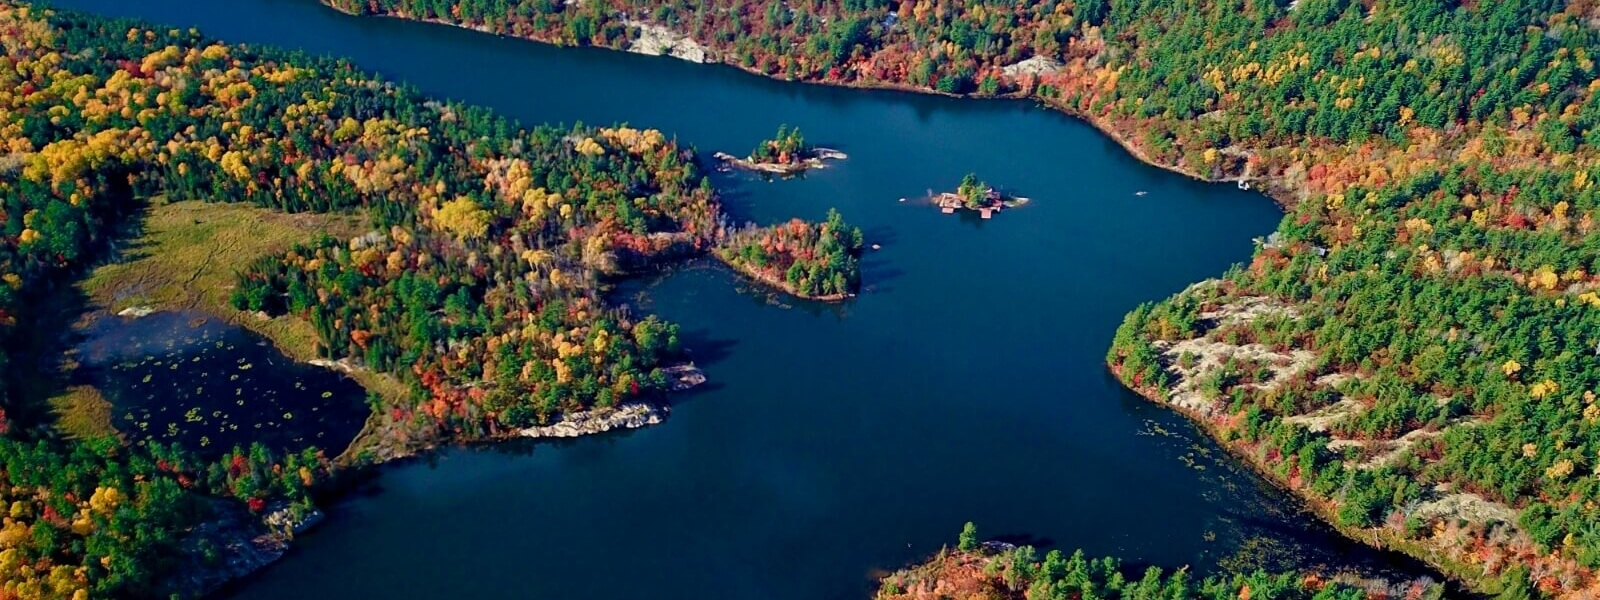 Aerial view of the north channel during the colourful fall season.